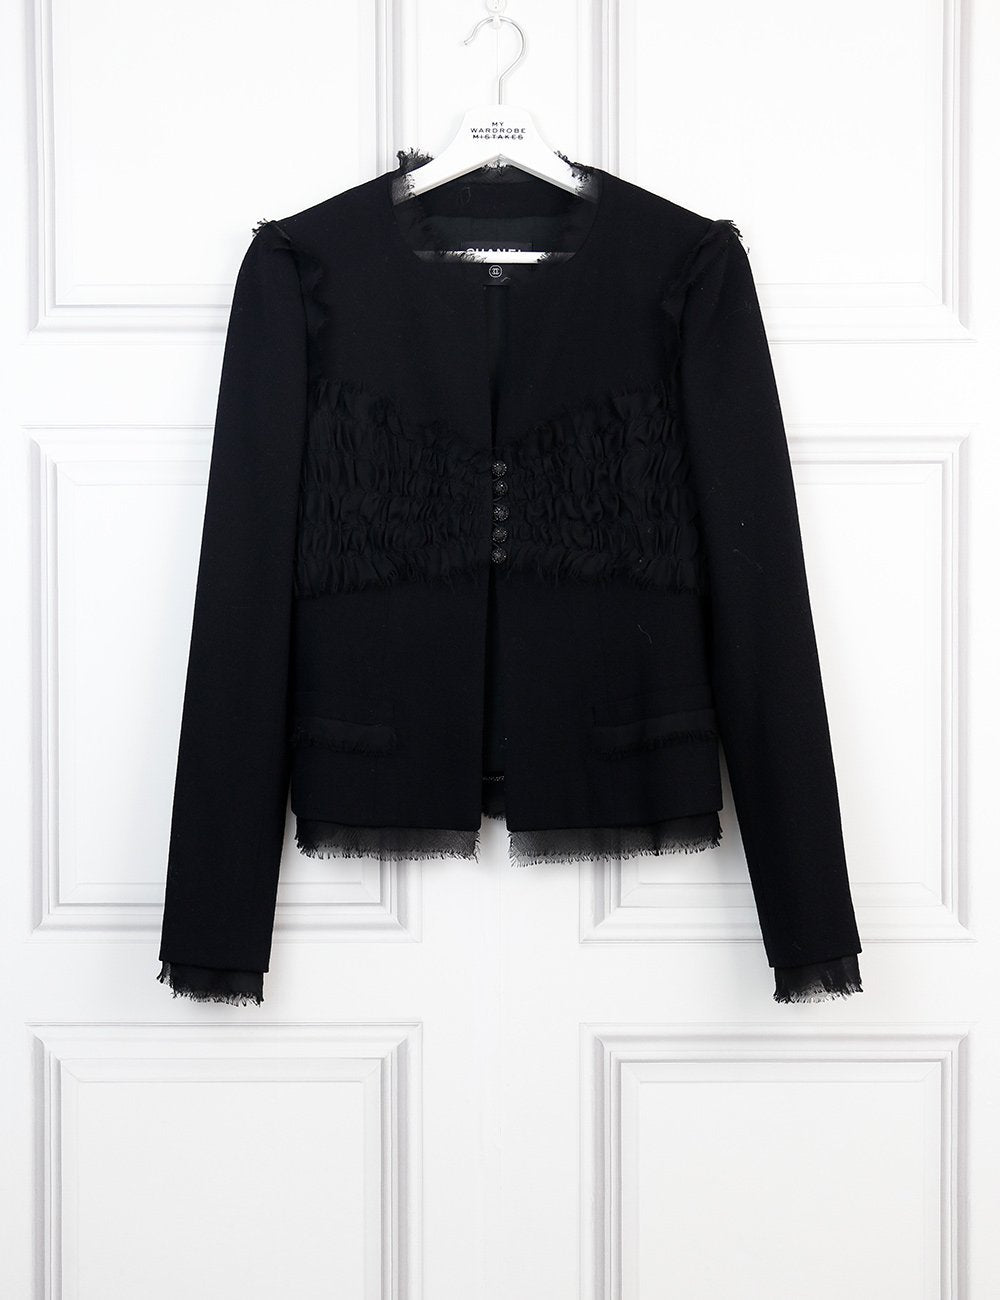 CHANEL CLOTHING Collarless jacket with pleats and strass buttons